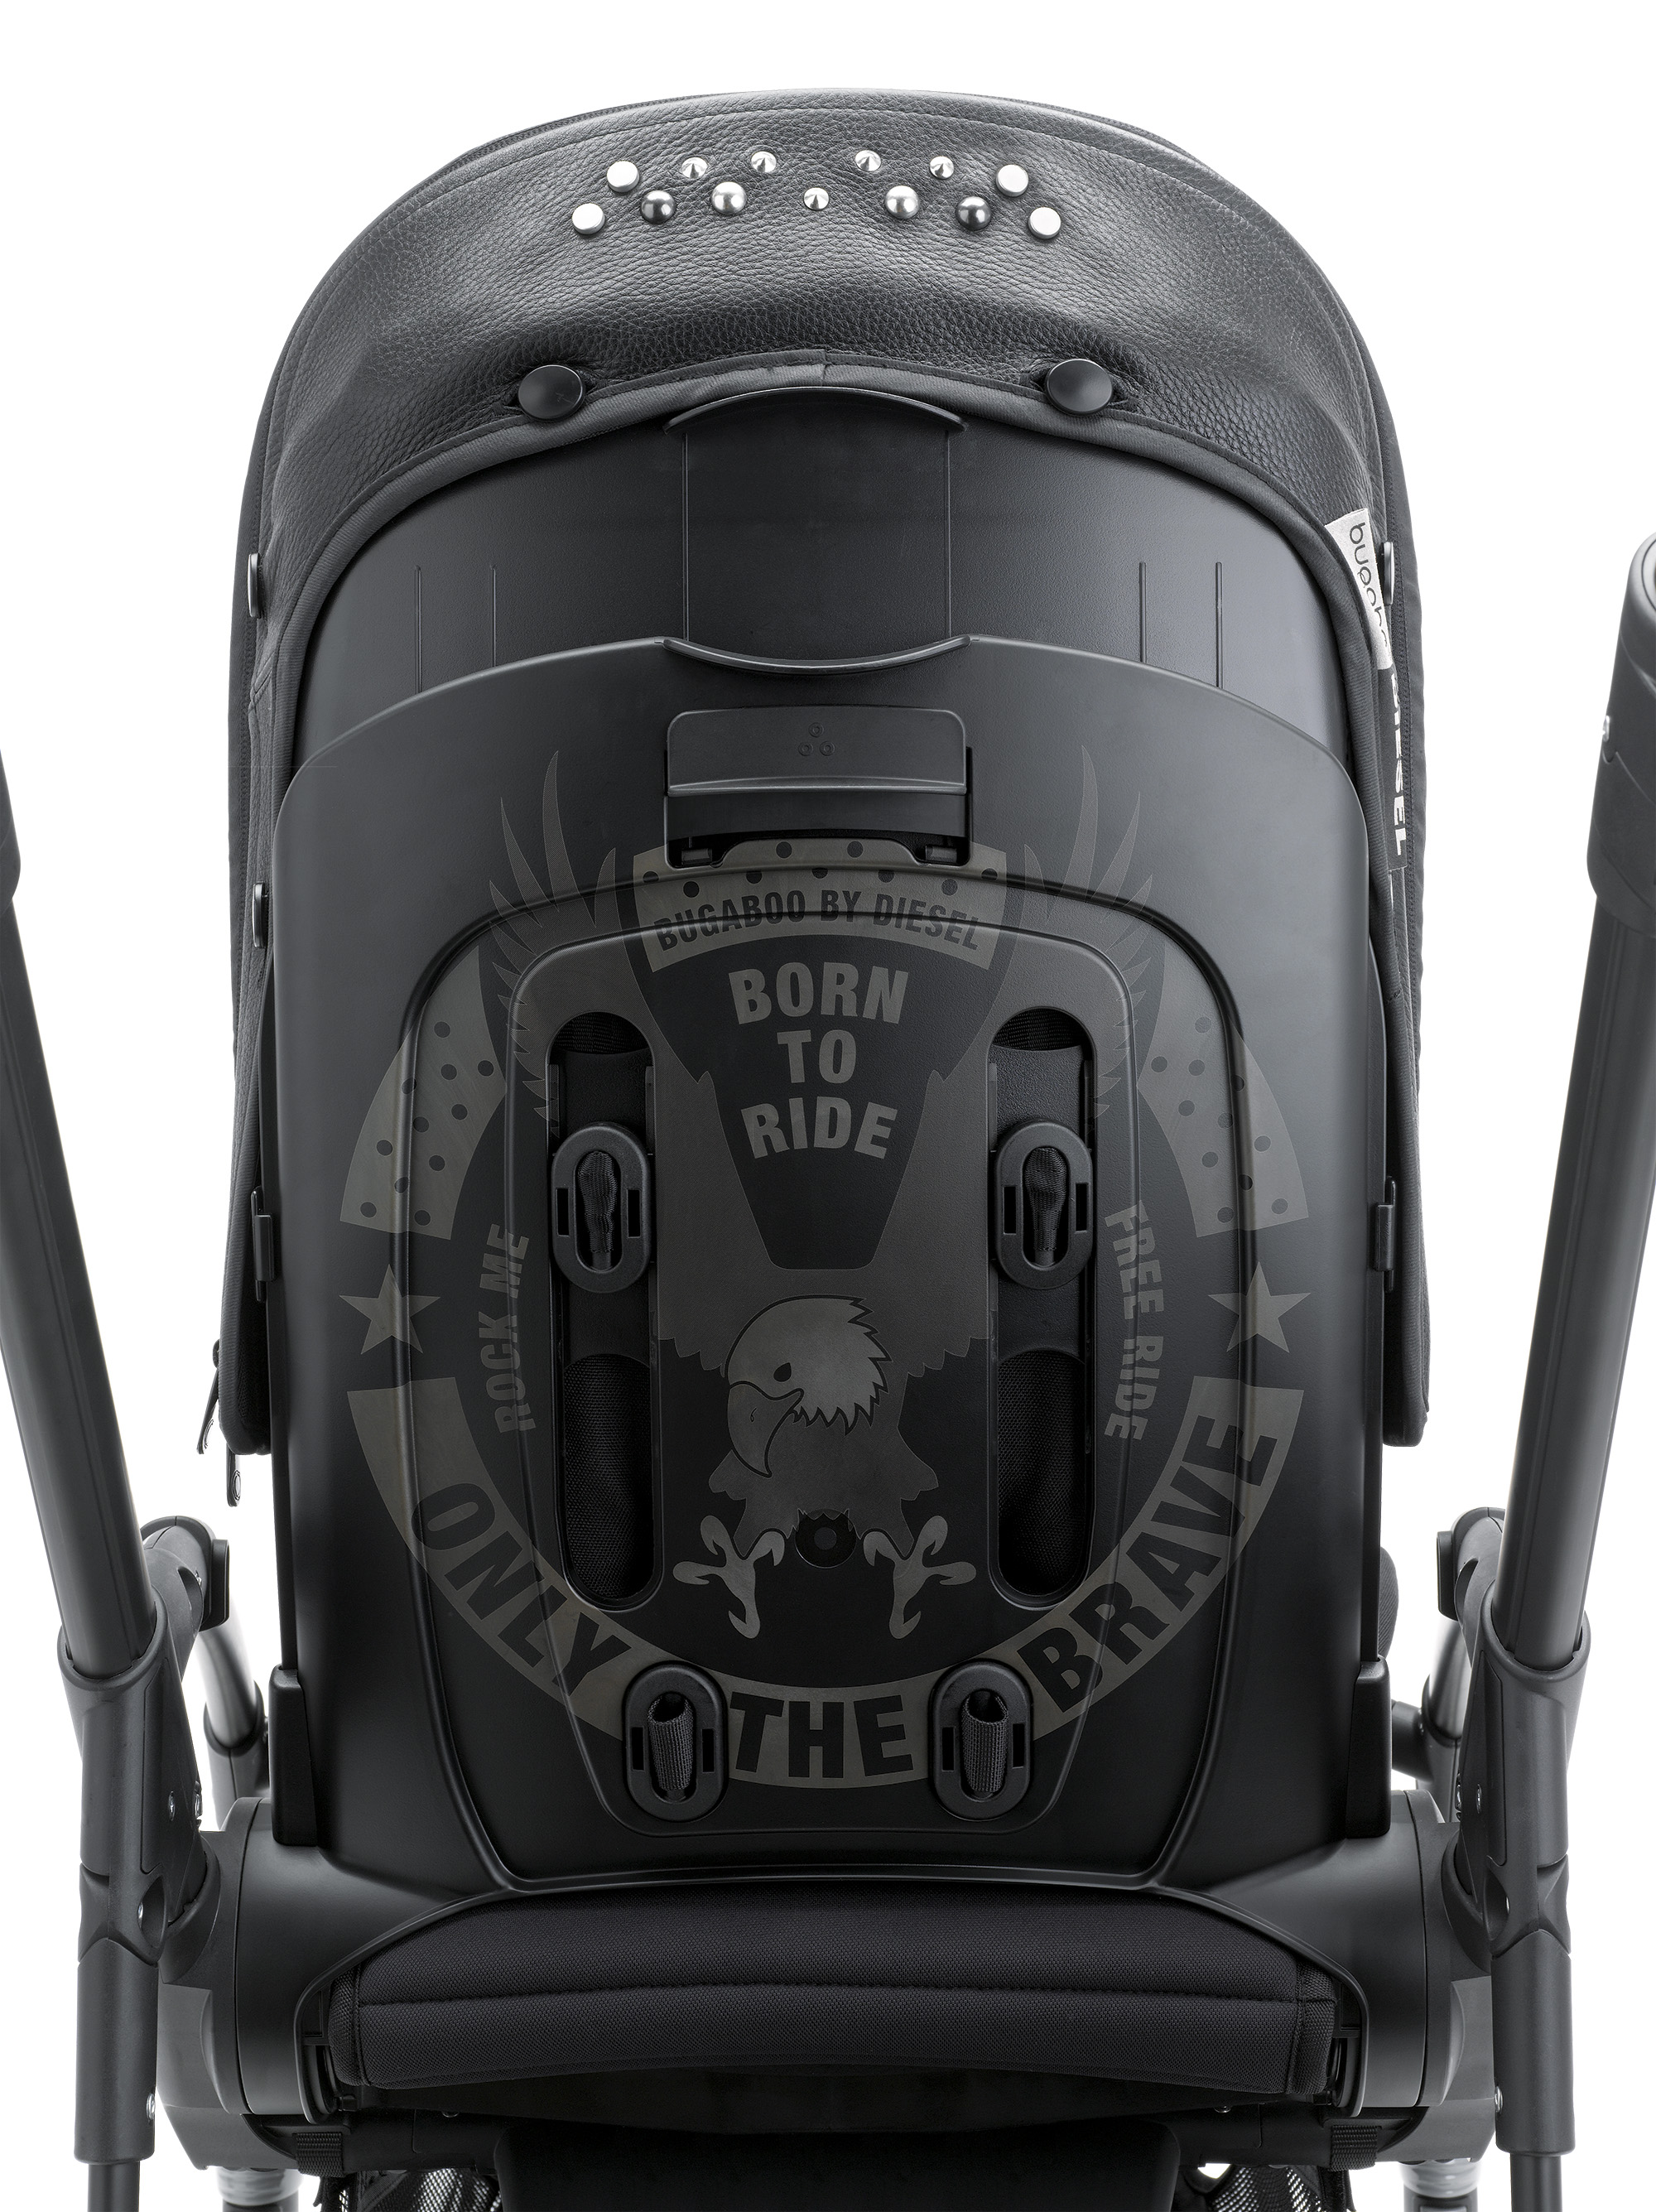 "Diesel's famous Slogan "" Only the Brave"" placed on the back of the backrest"